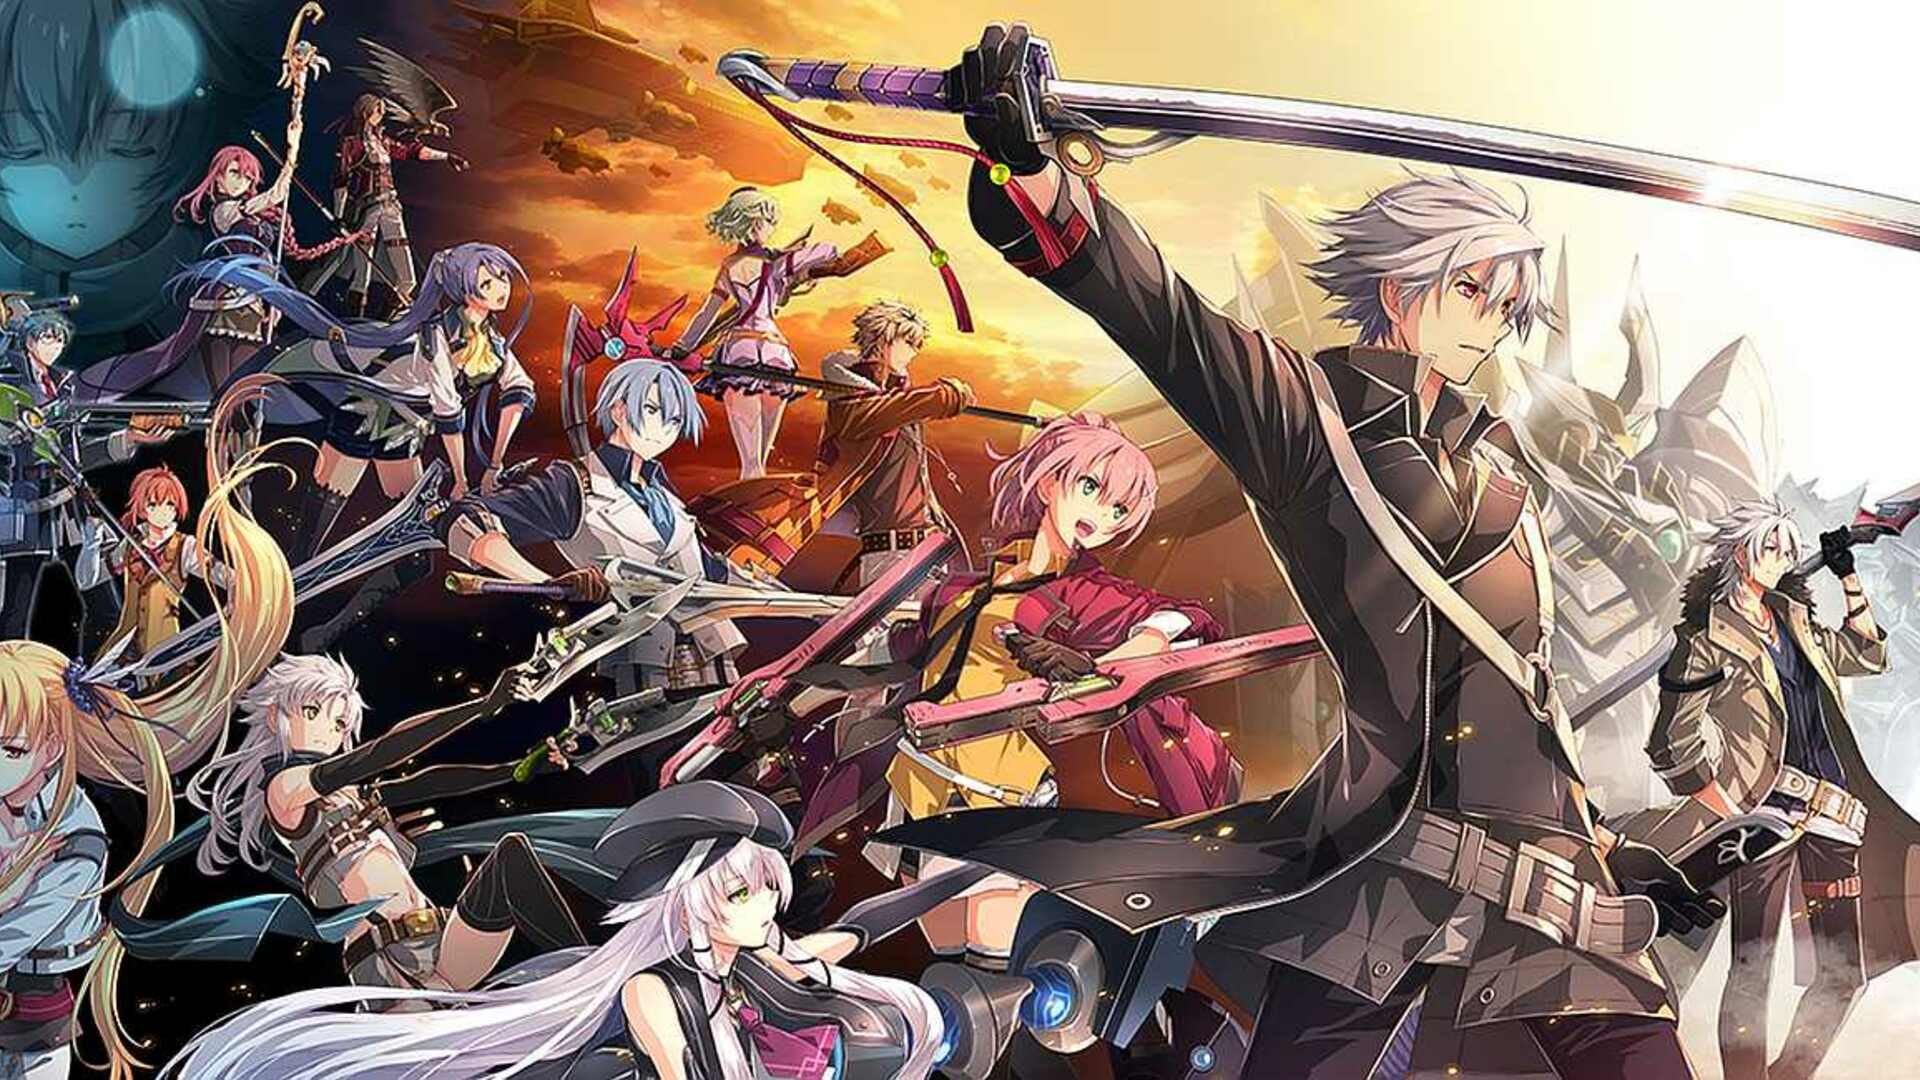 New Trails of Cold Steel 4 Trailer Brings Together Some Familiar Faces